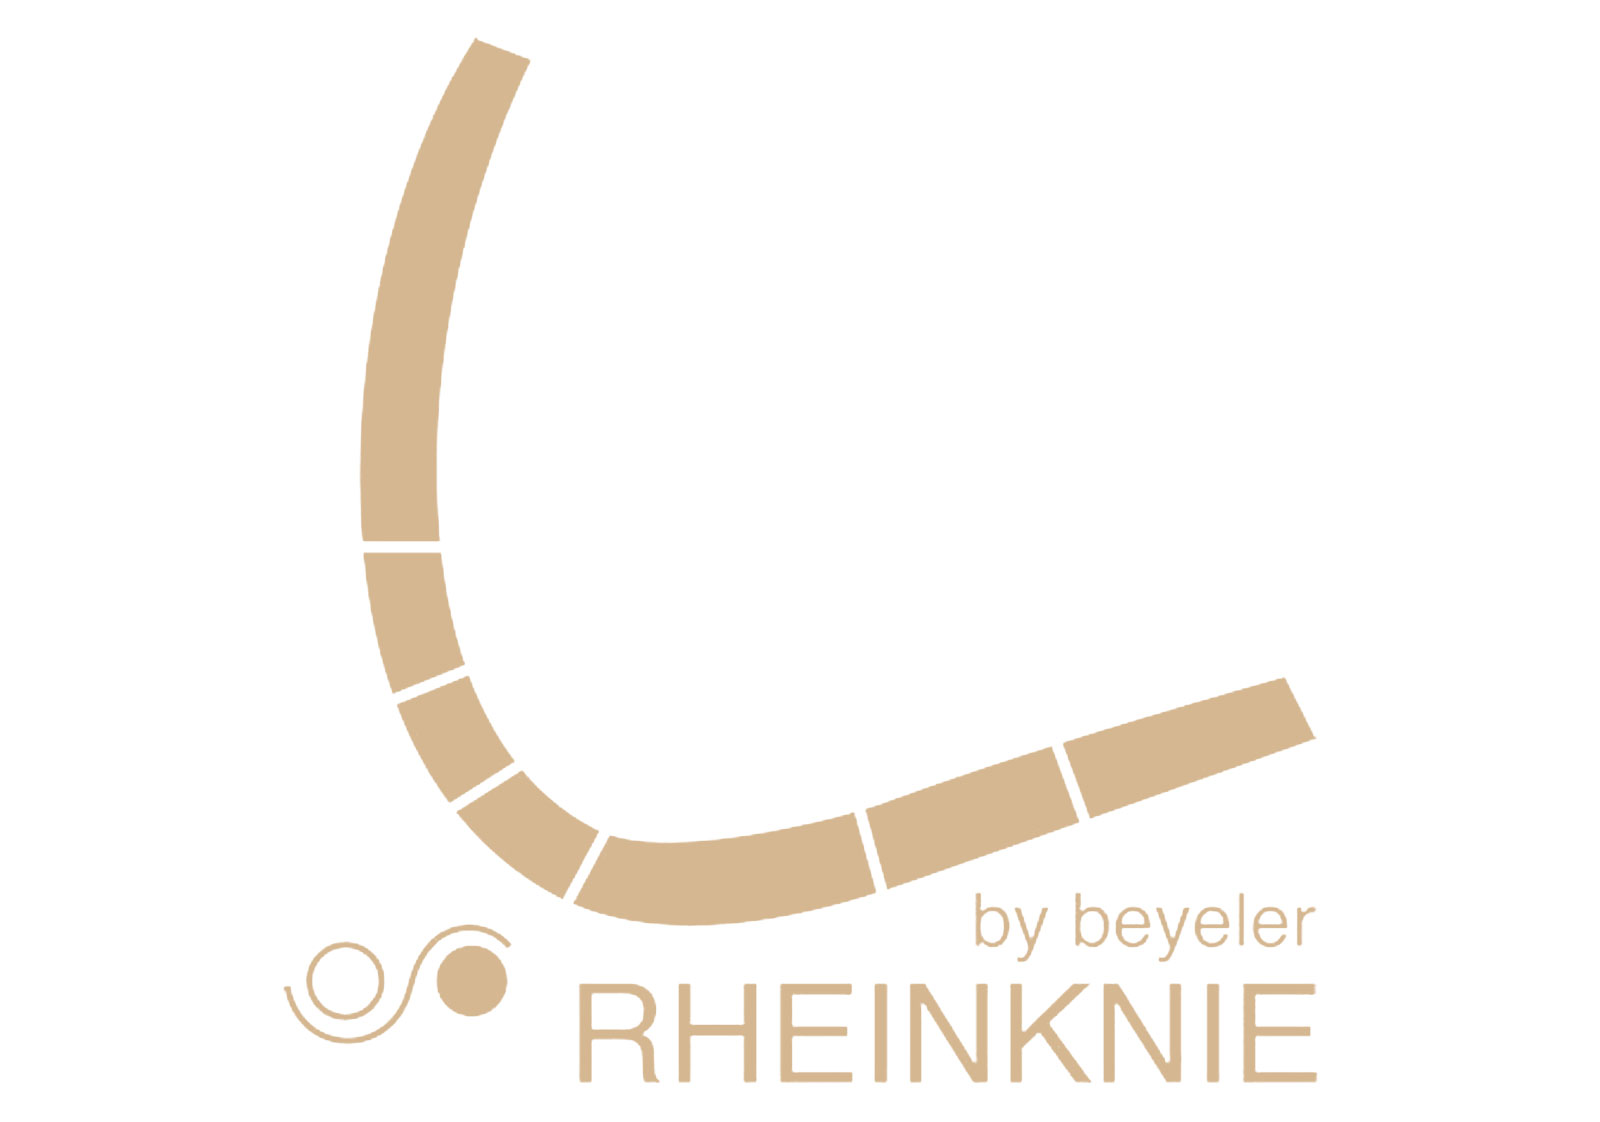 The glasses culture in Basel with Rheinknie by Beyeler